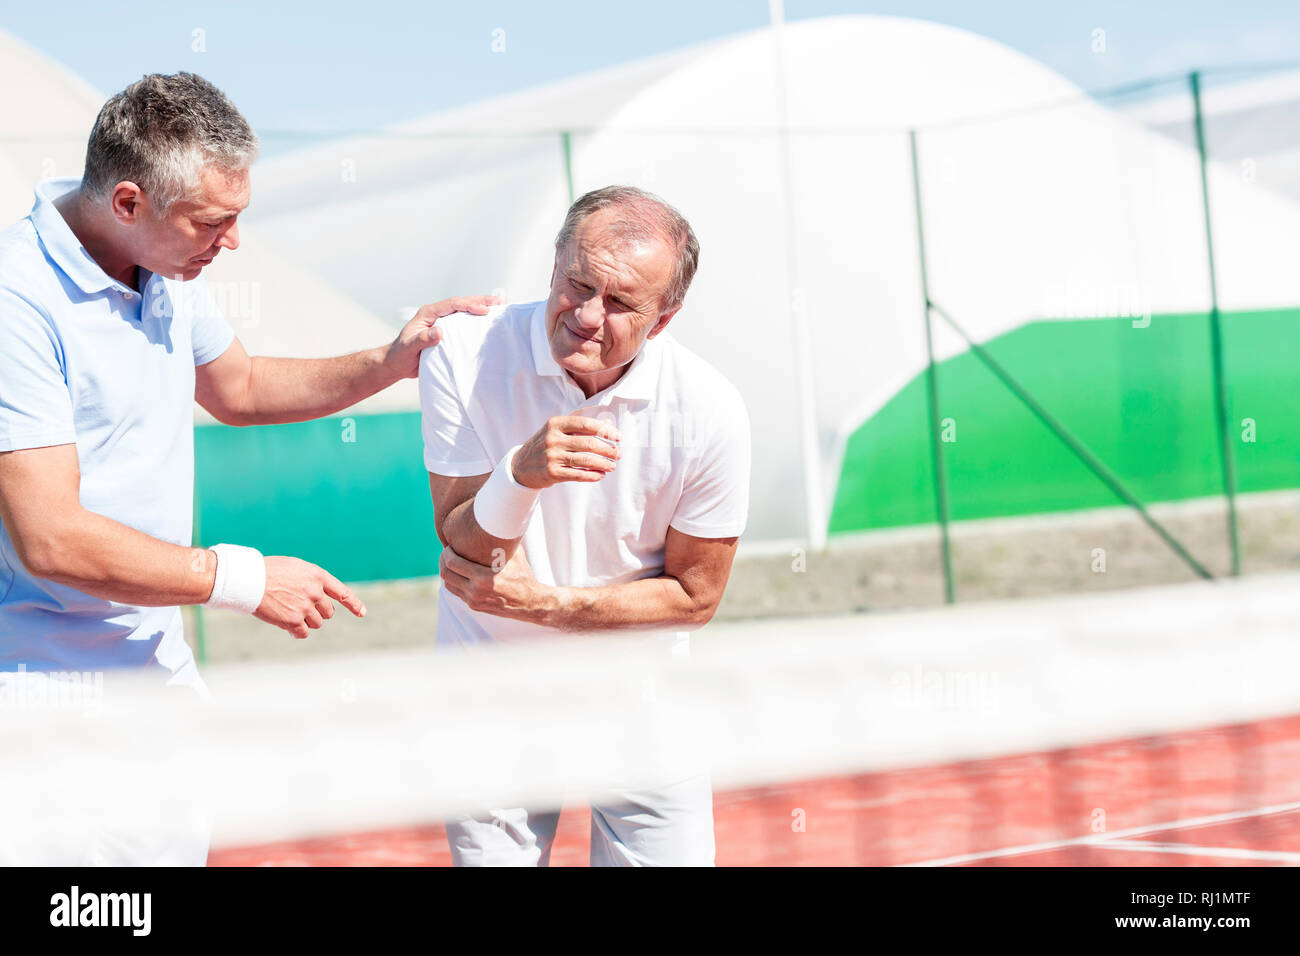 Mature man helping senior friend with elbow injury while playing tennis on sunny day - Stock Image